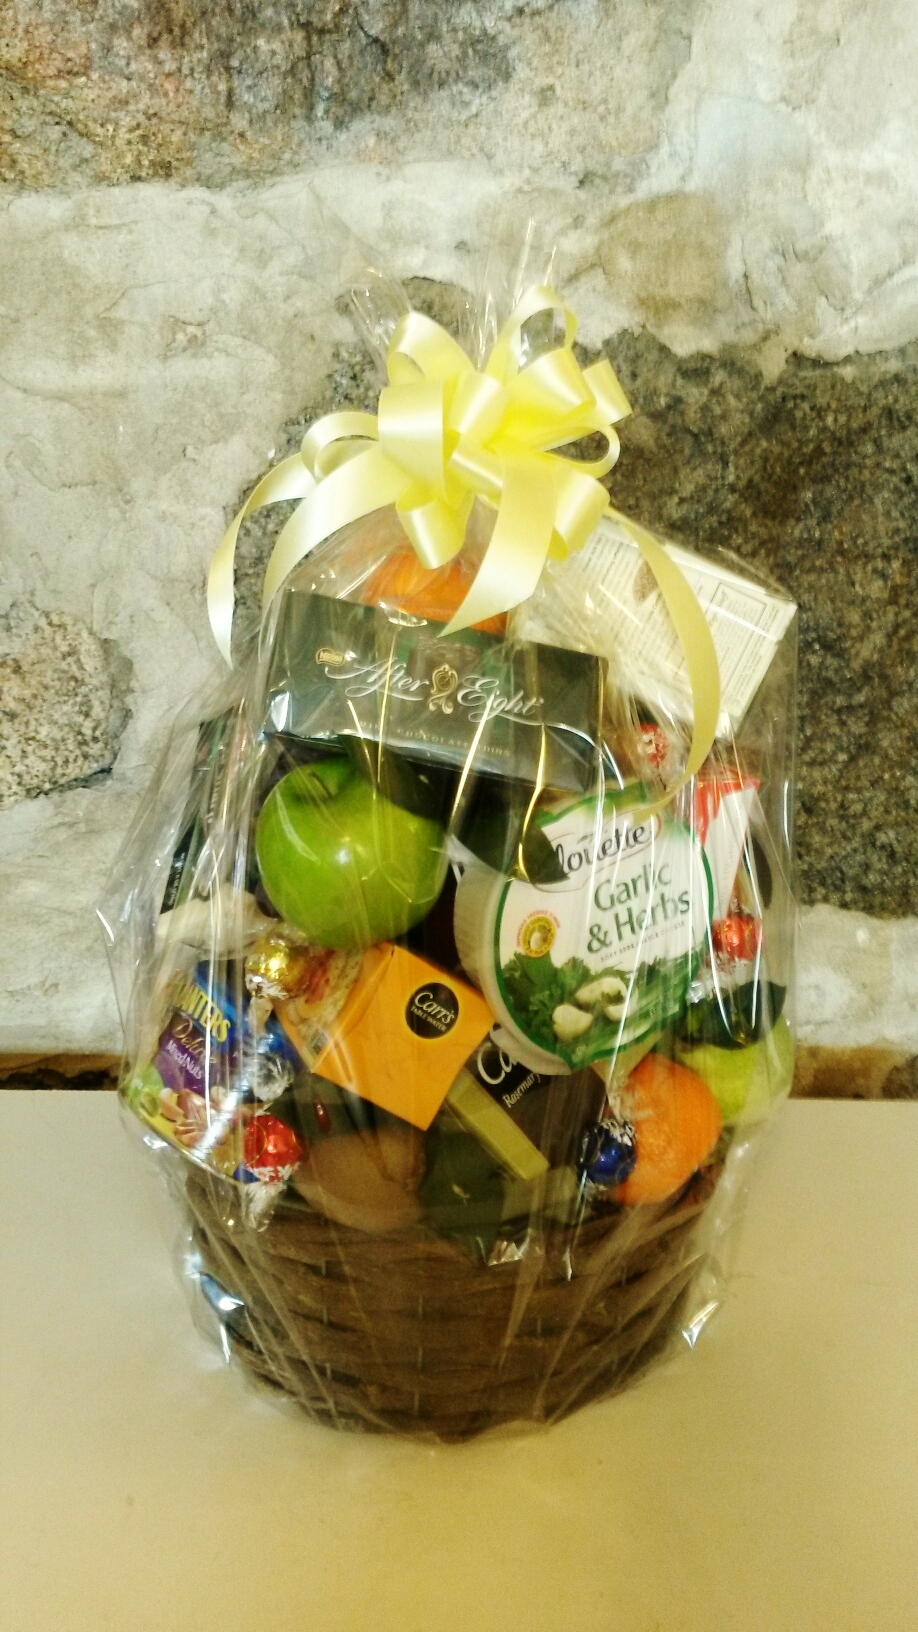 C4   $100 - $175 gourmet basket with fruit, cheese, nuts, crackers, sweets. $100 as shown.